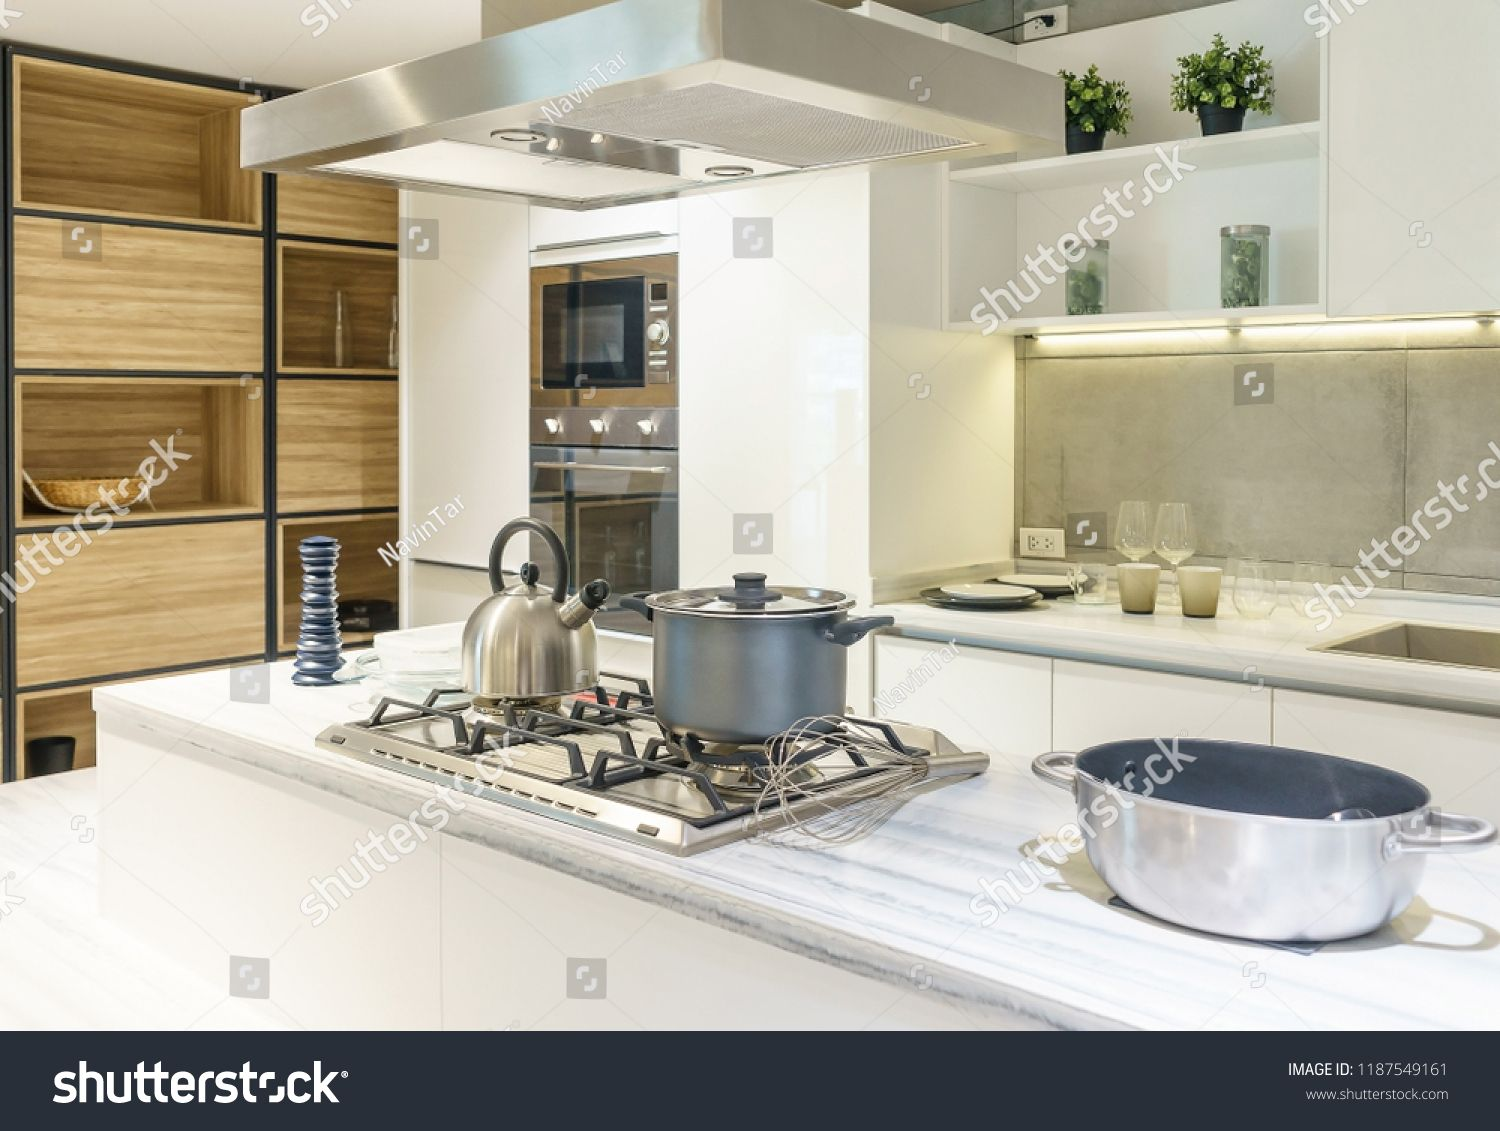 Bright Modern Kitchen With Stainless Steel Appliances Interior